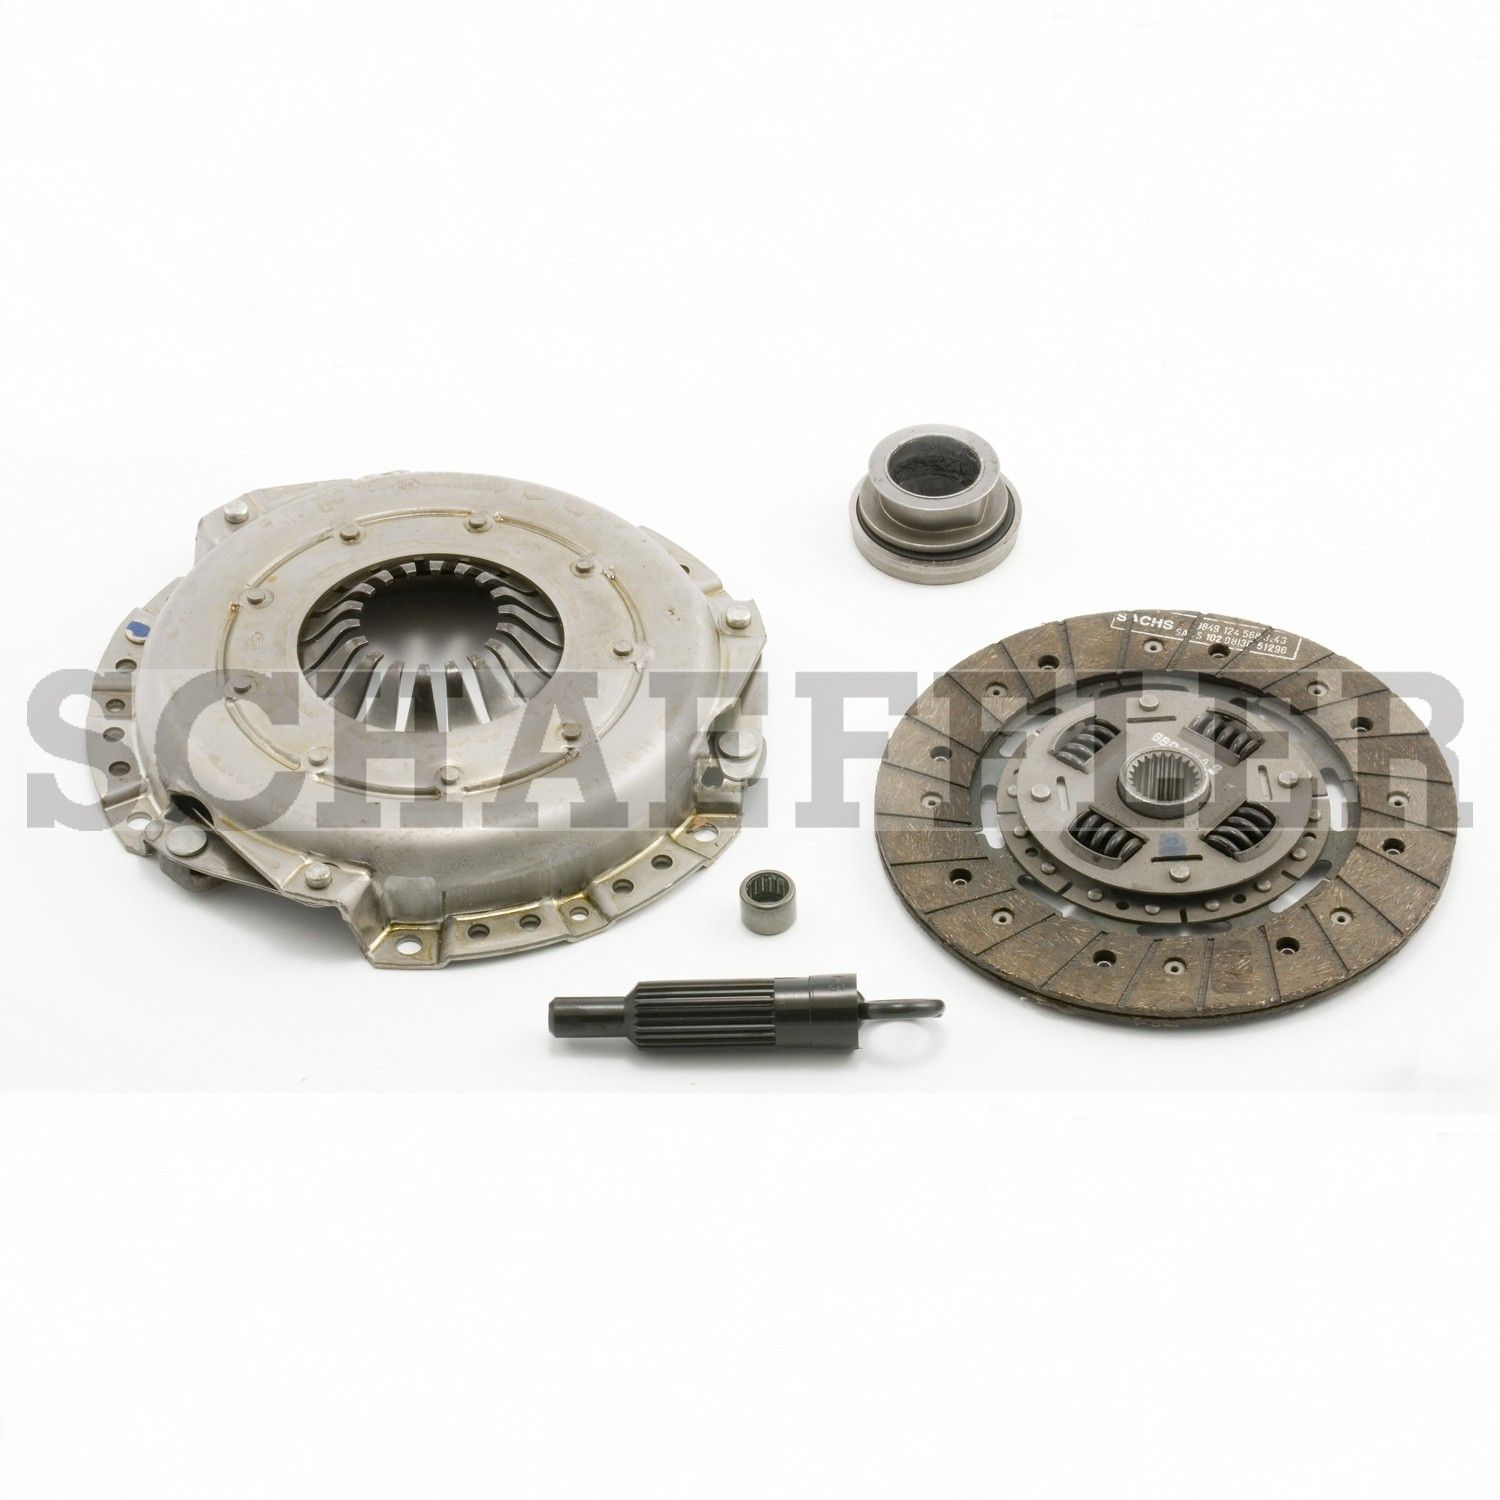 ford mustang clutch kit replacement exedy luk rhino pac sachs rh go parts com 1979 Ford Mustang 1982 Ford Mustang